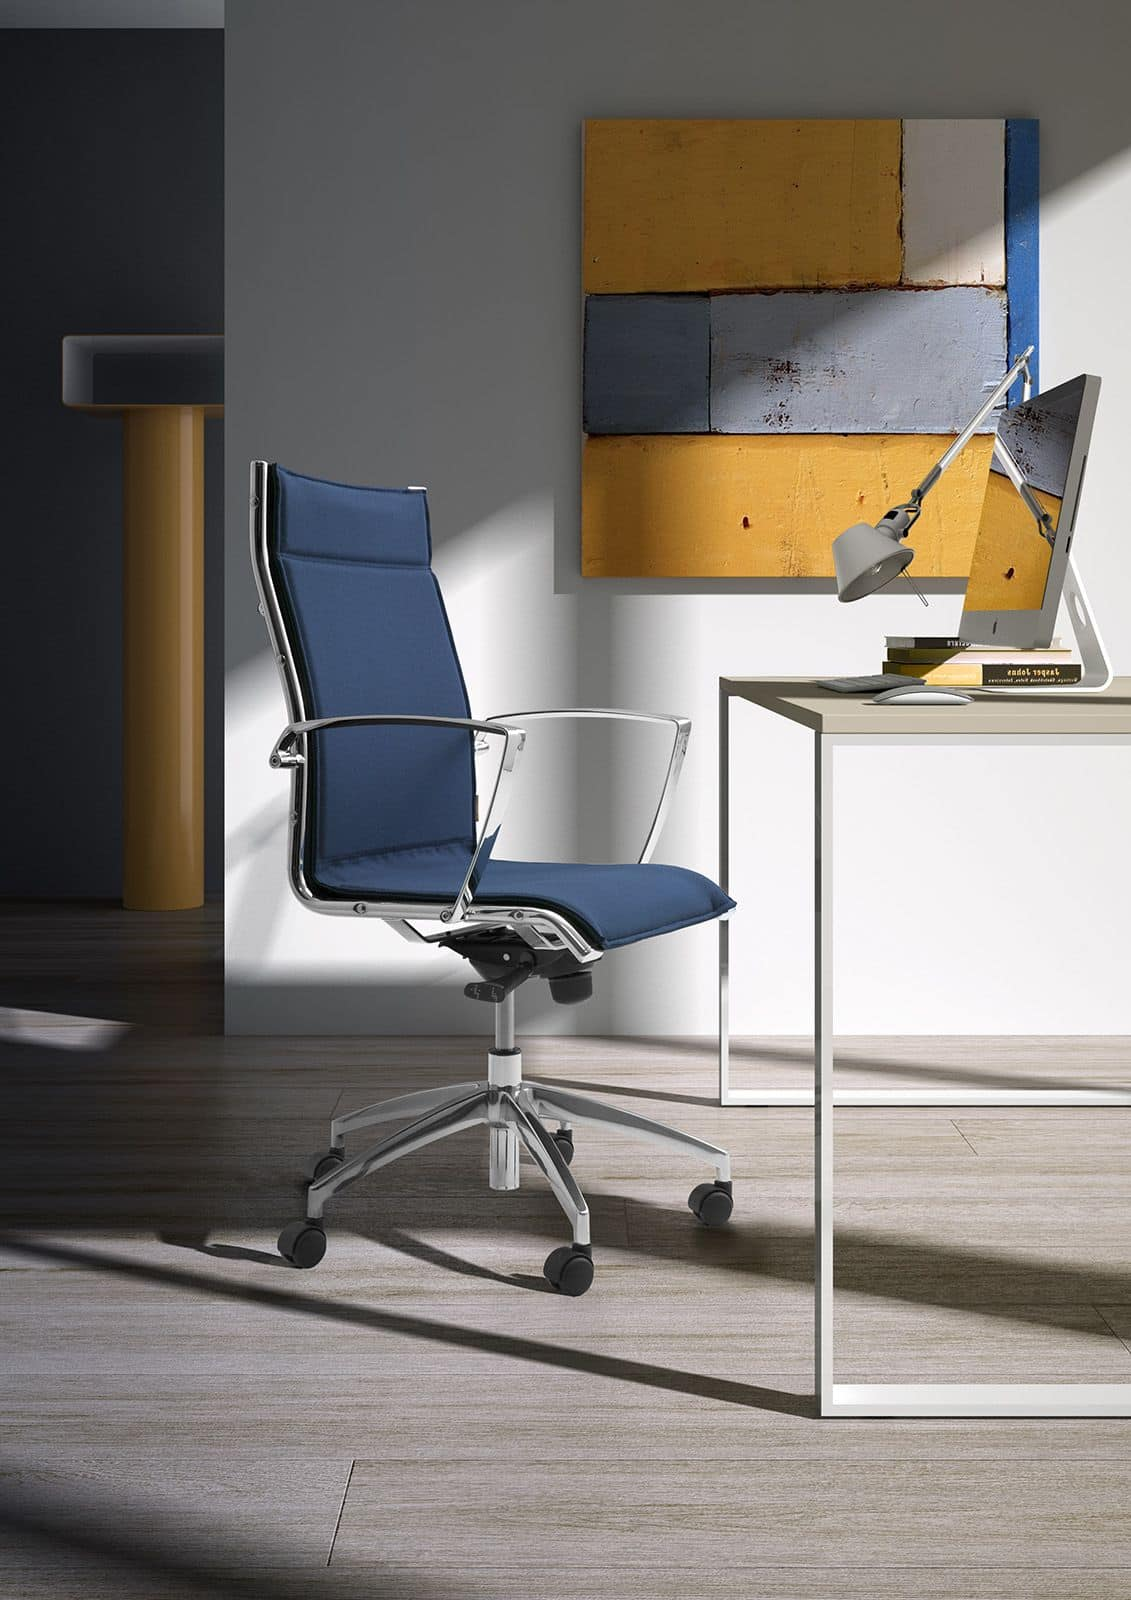 Origami LX, Padded chair for office with chromed armrests